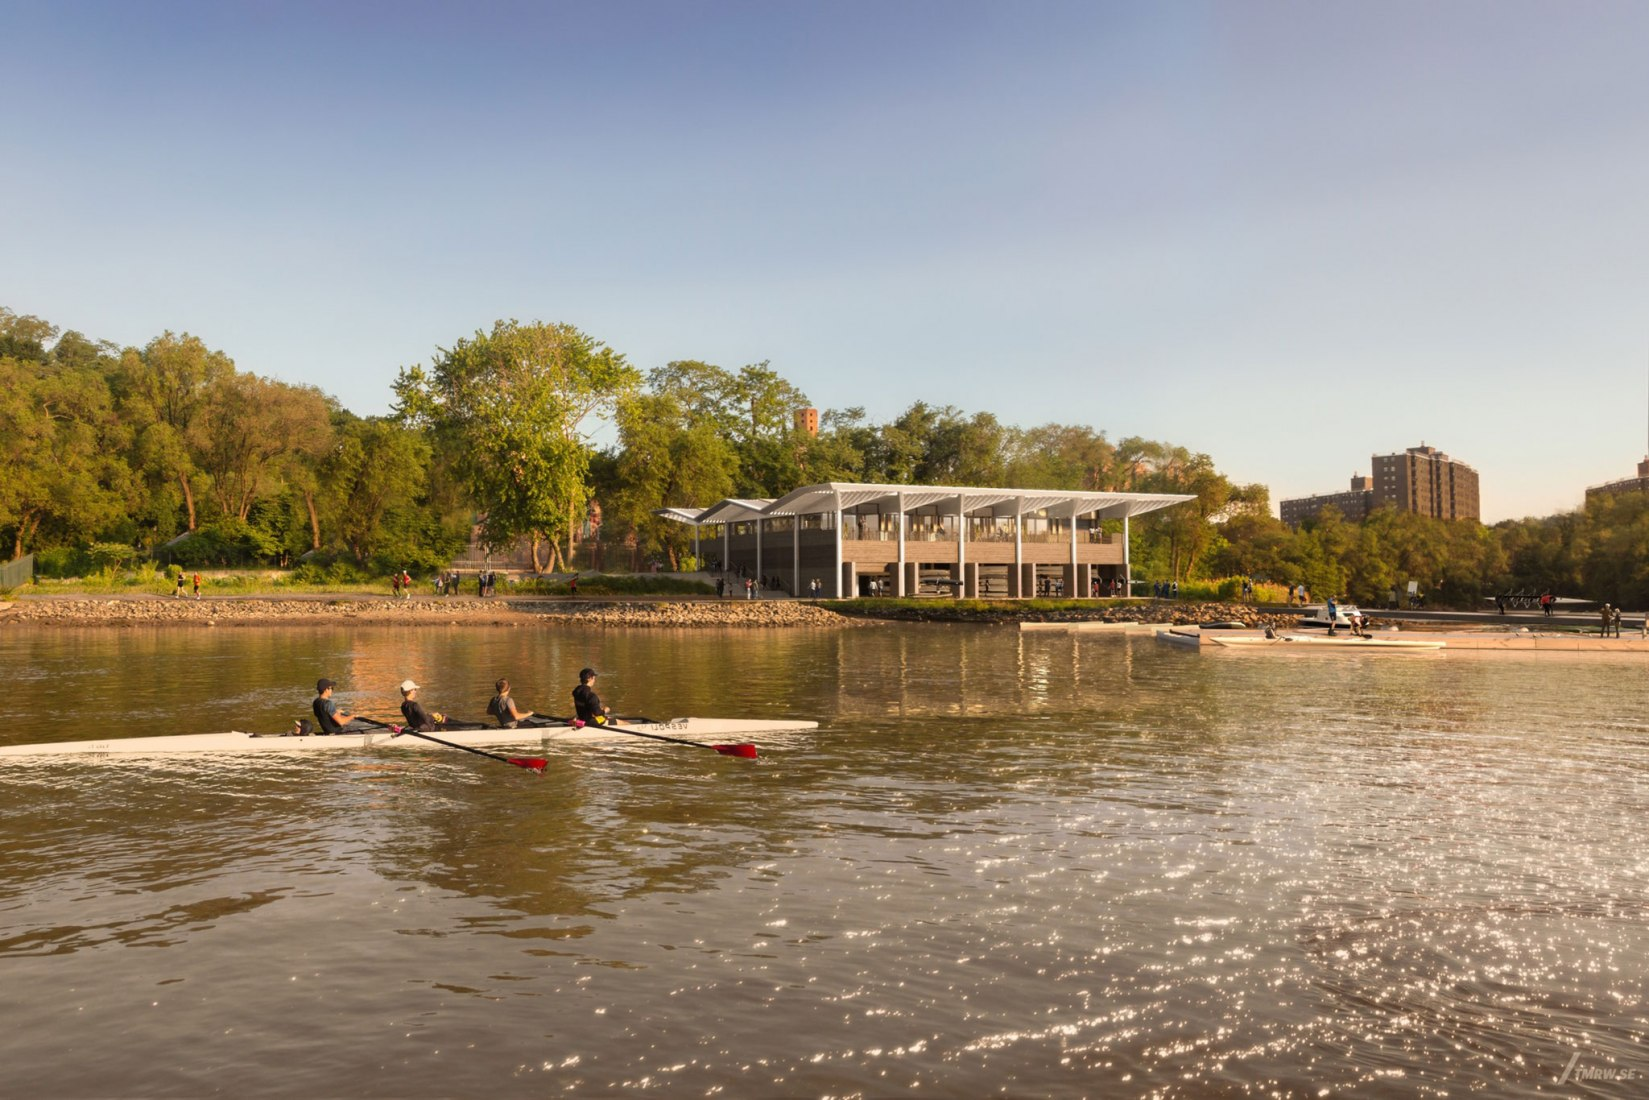 Rendering. Harlem Boathouse. Image Courtesy of Norman Foster